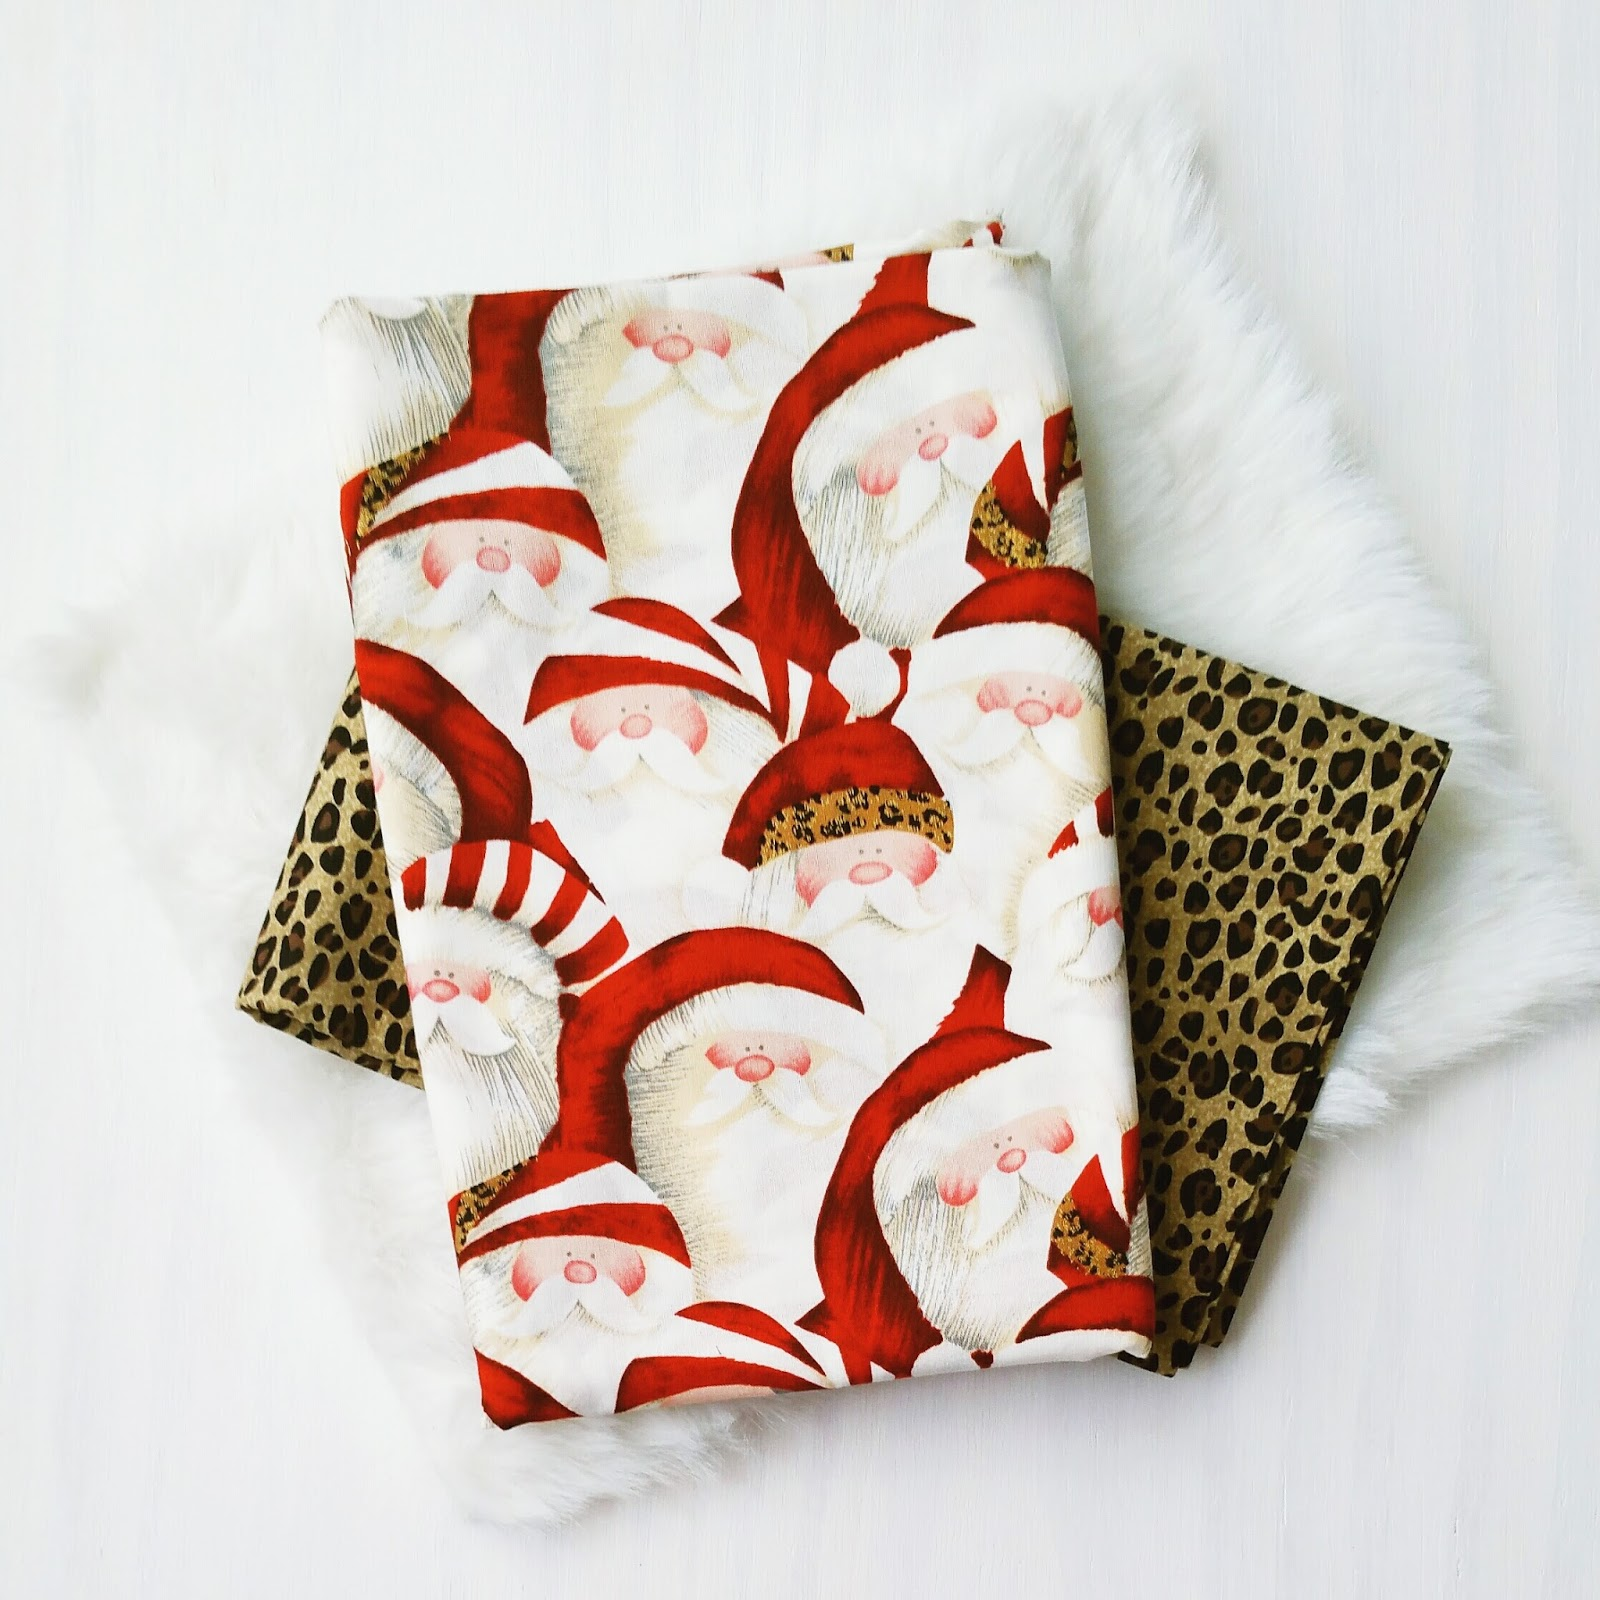 Wild About Christmas Fabric Combo by Bambino Amore - the Apron Makers